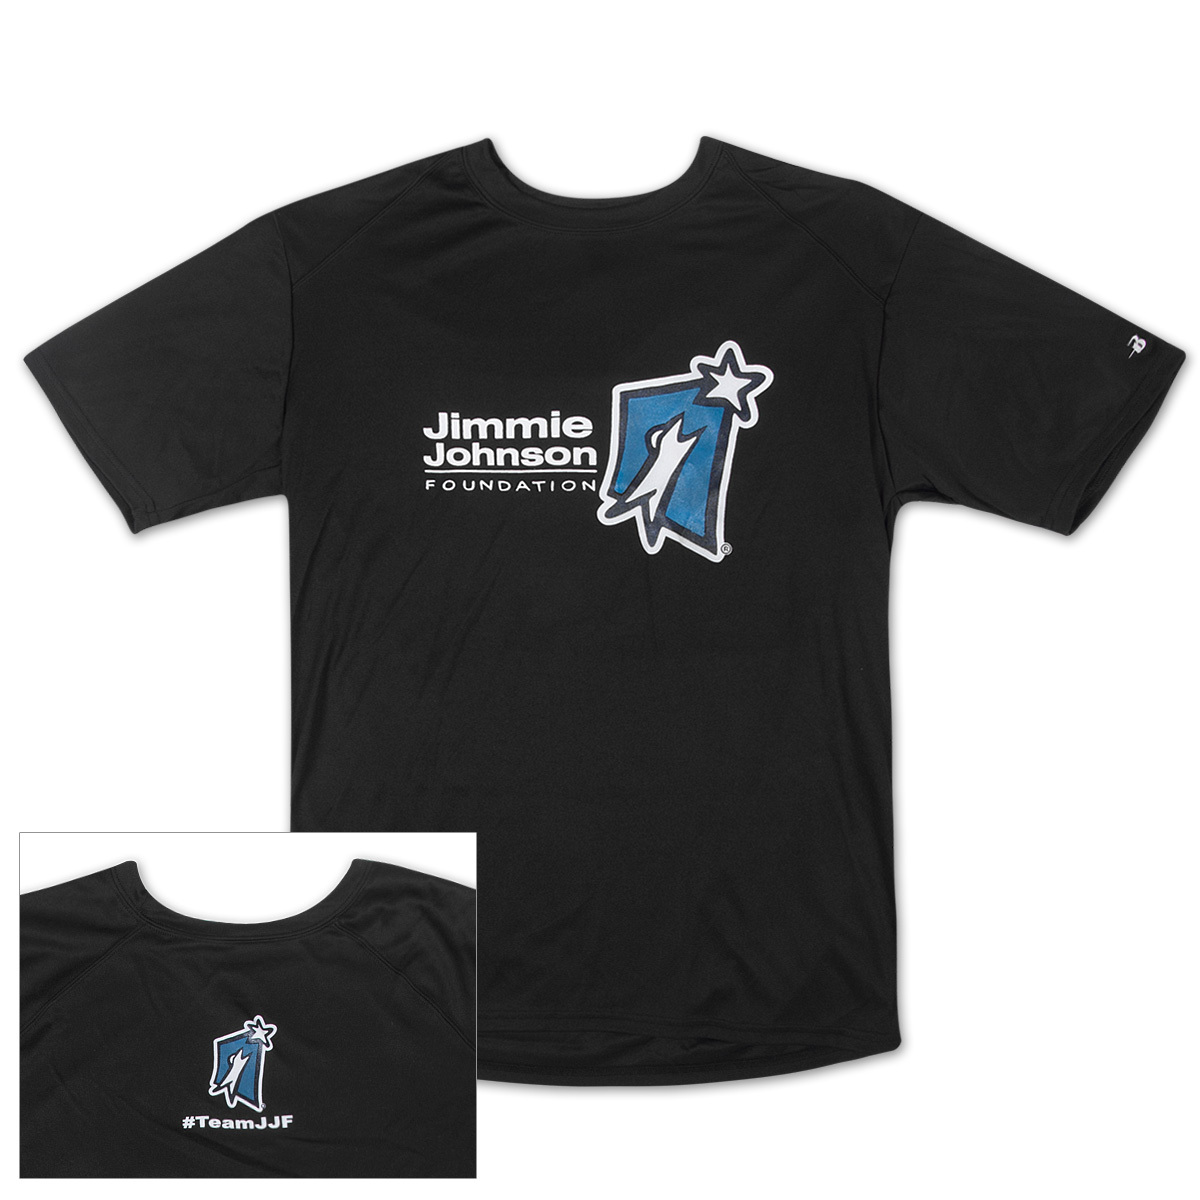 Jimmie Johnson Foundation #TeamJJF BadgerT-shirt